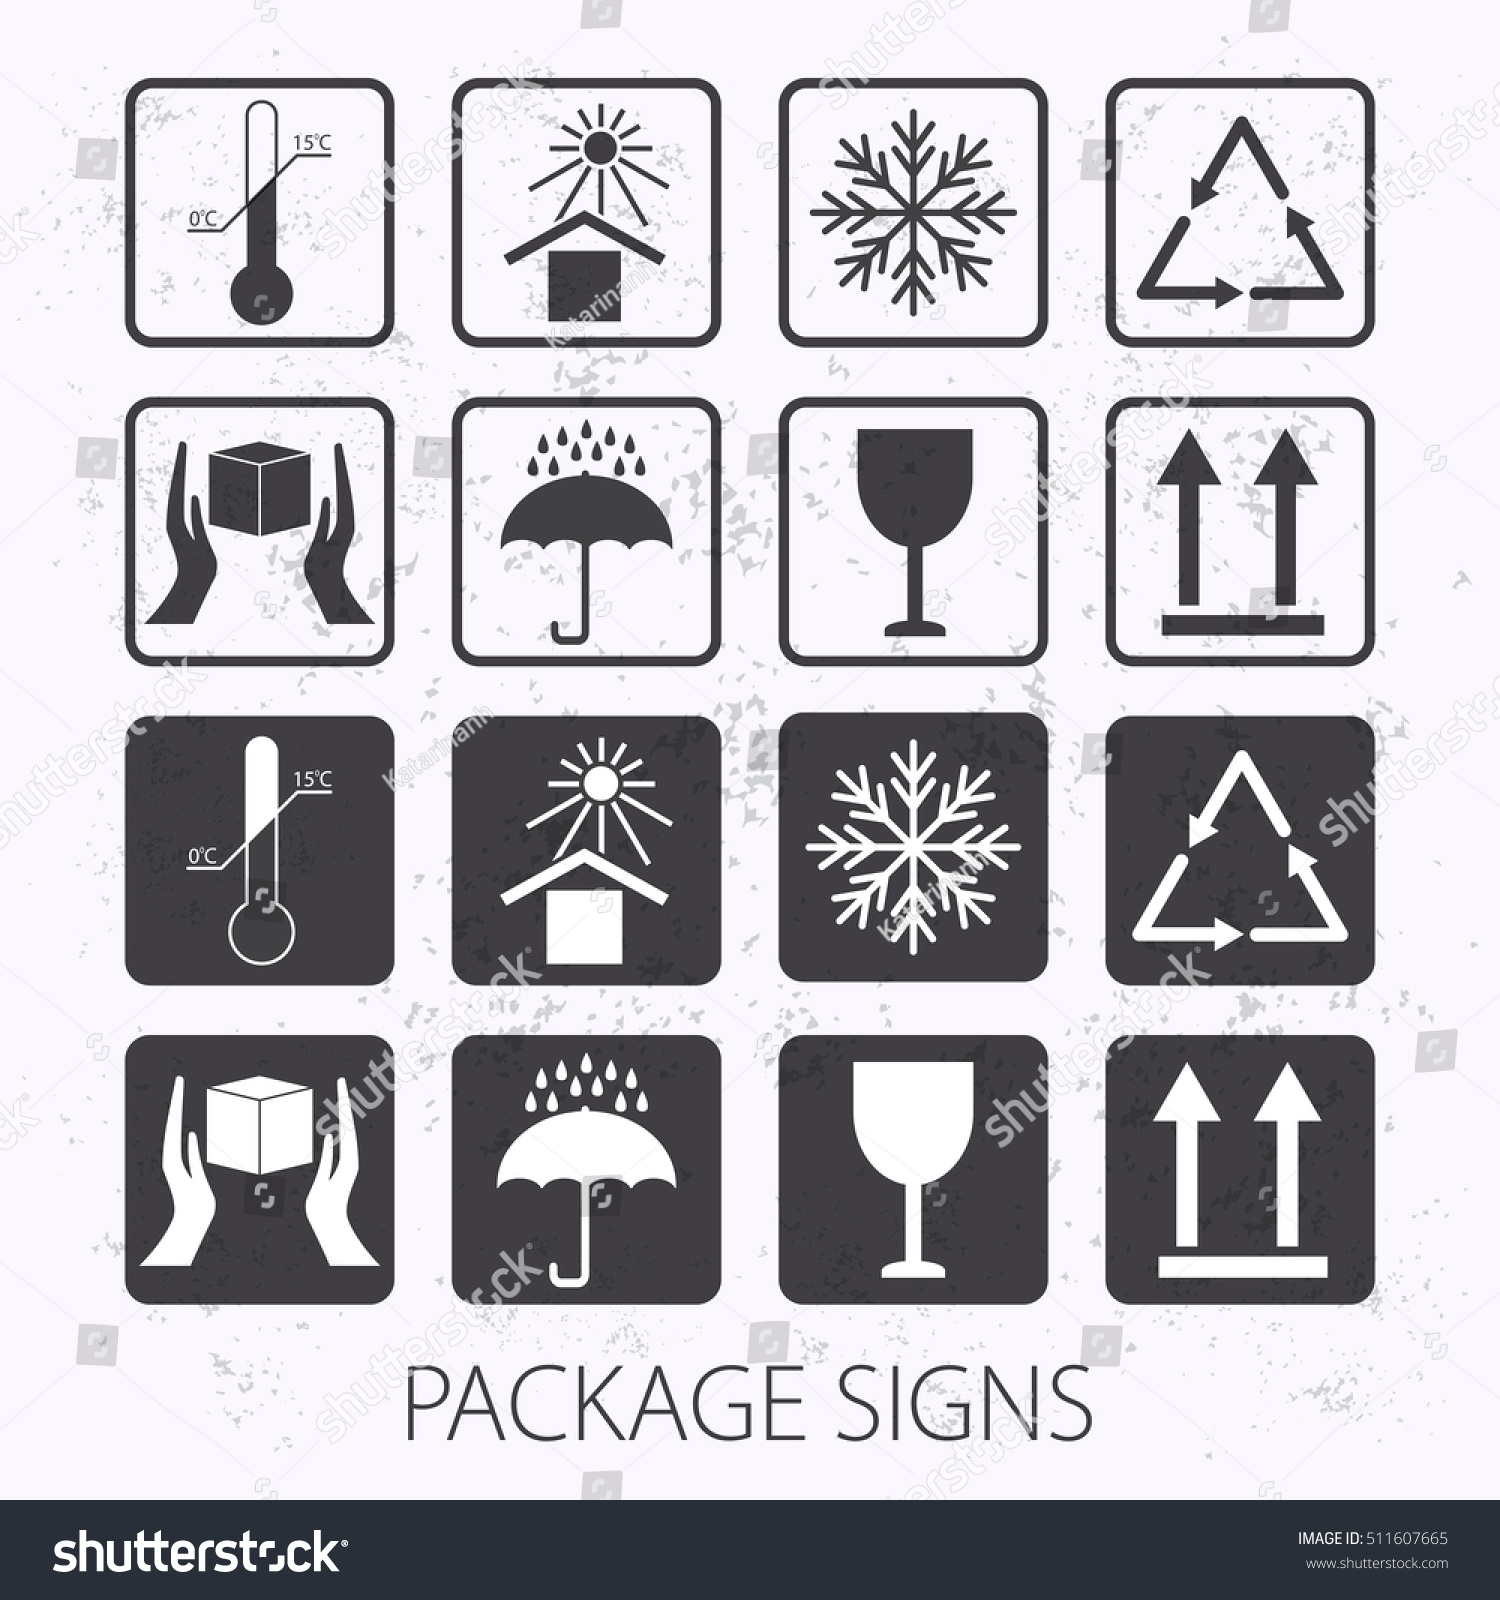 Vector Packaging Symbols On Vector Grunge Stock Vector Royalty Free